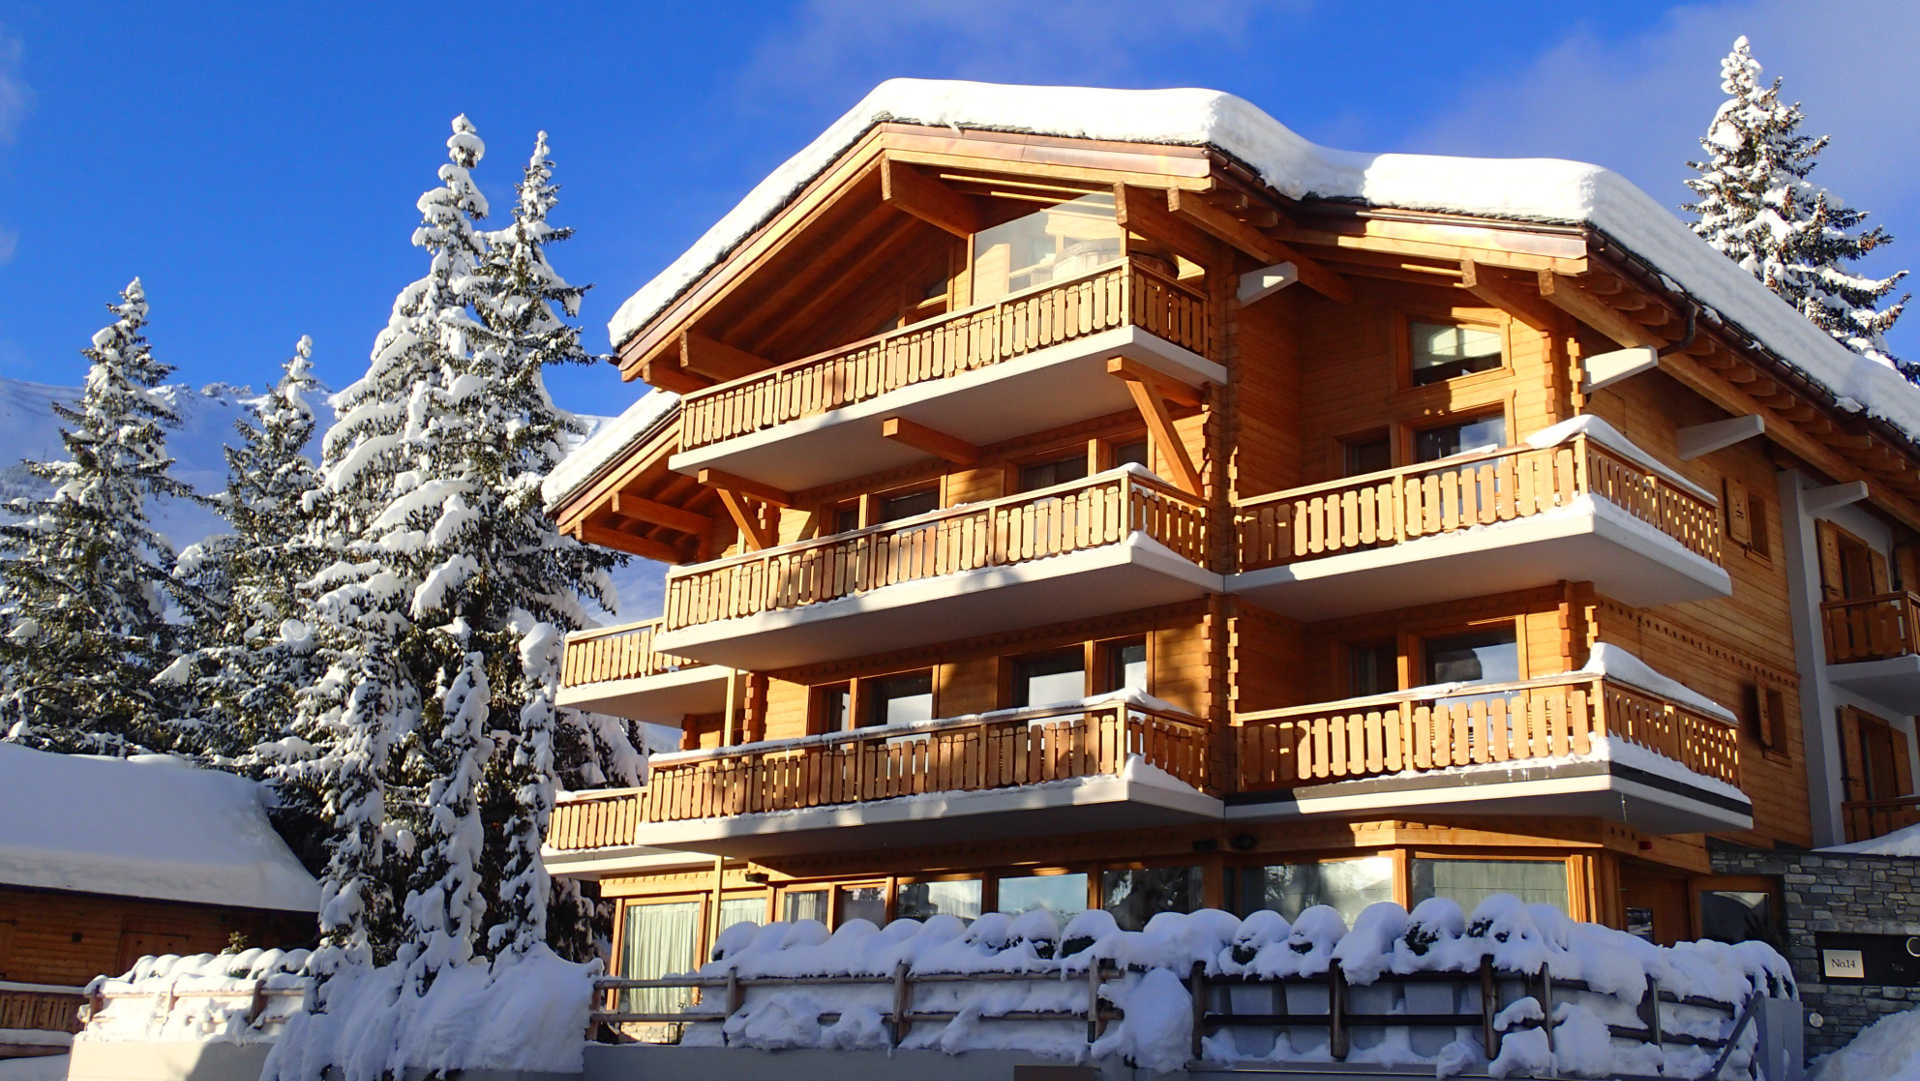 Outside view of Chalet Number 14- the largest chalet in Verbier